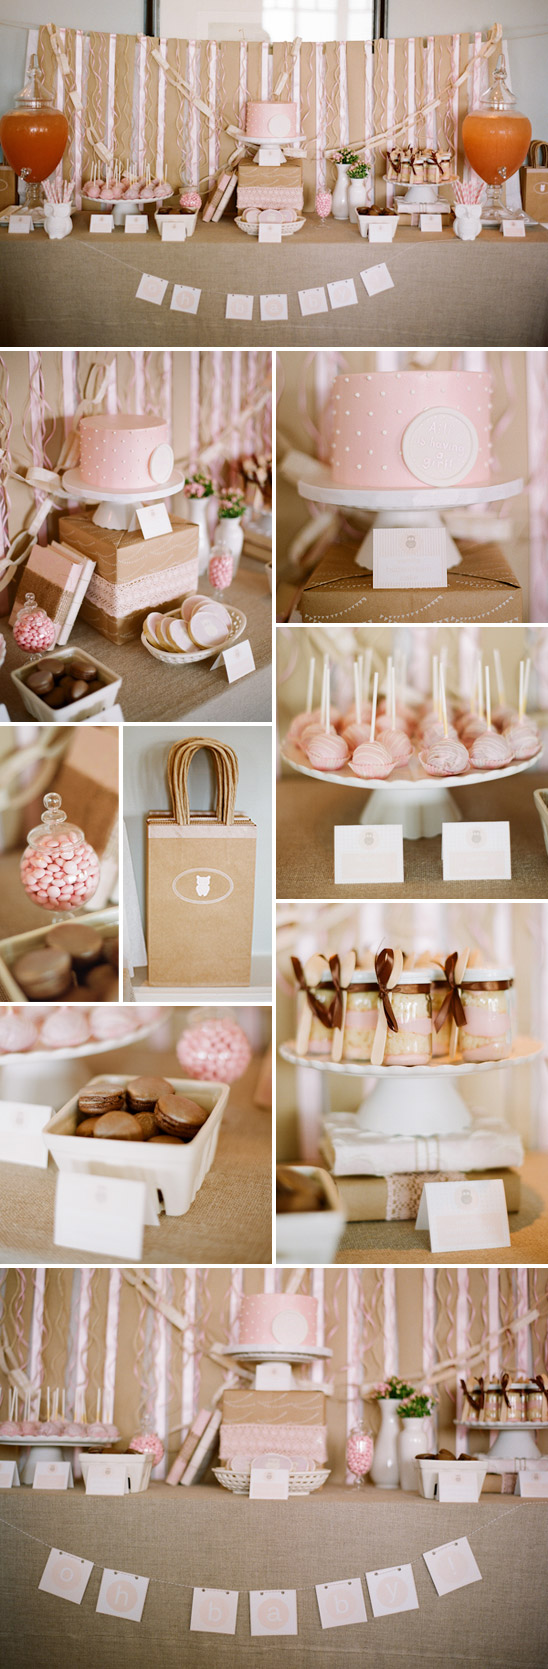 pink-owl-baby-shower-3